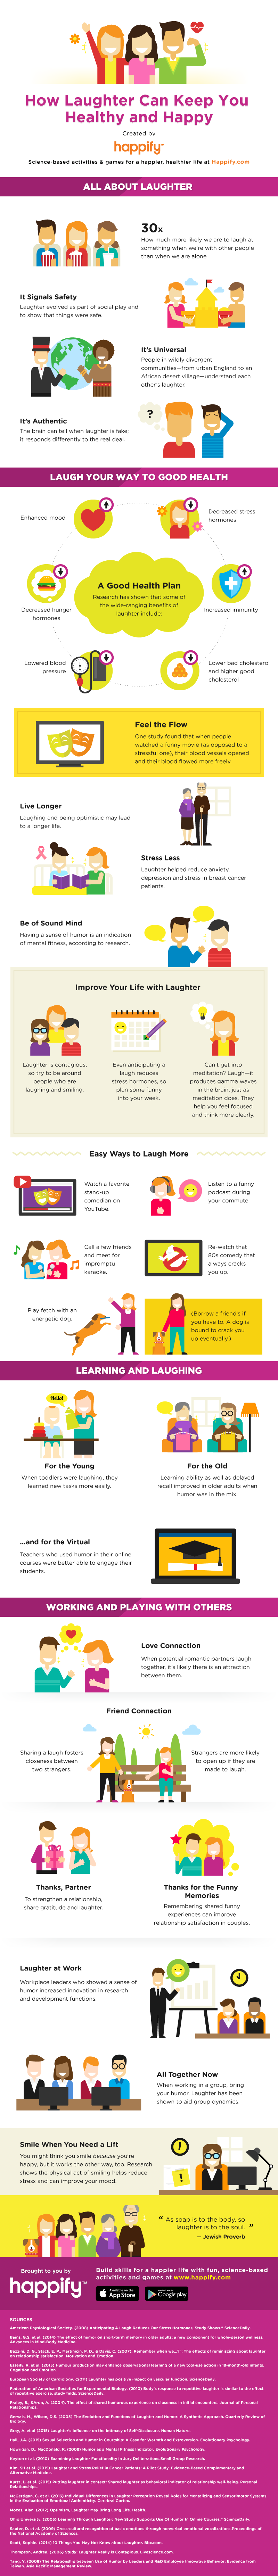 How Laughter Can Keep You Healthy and Happy by Happify